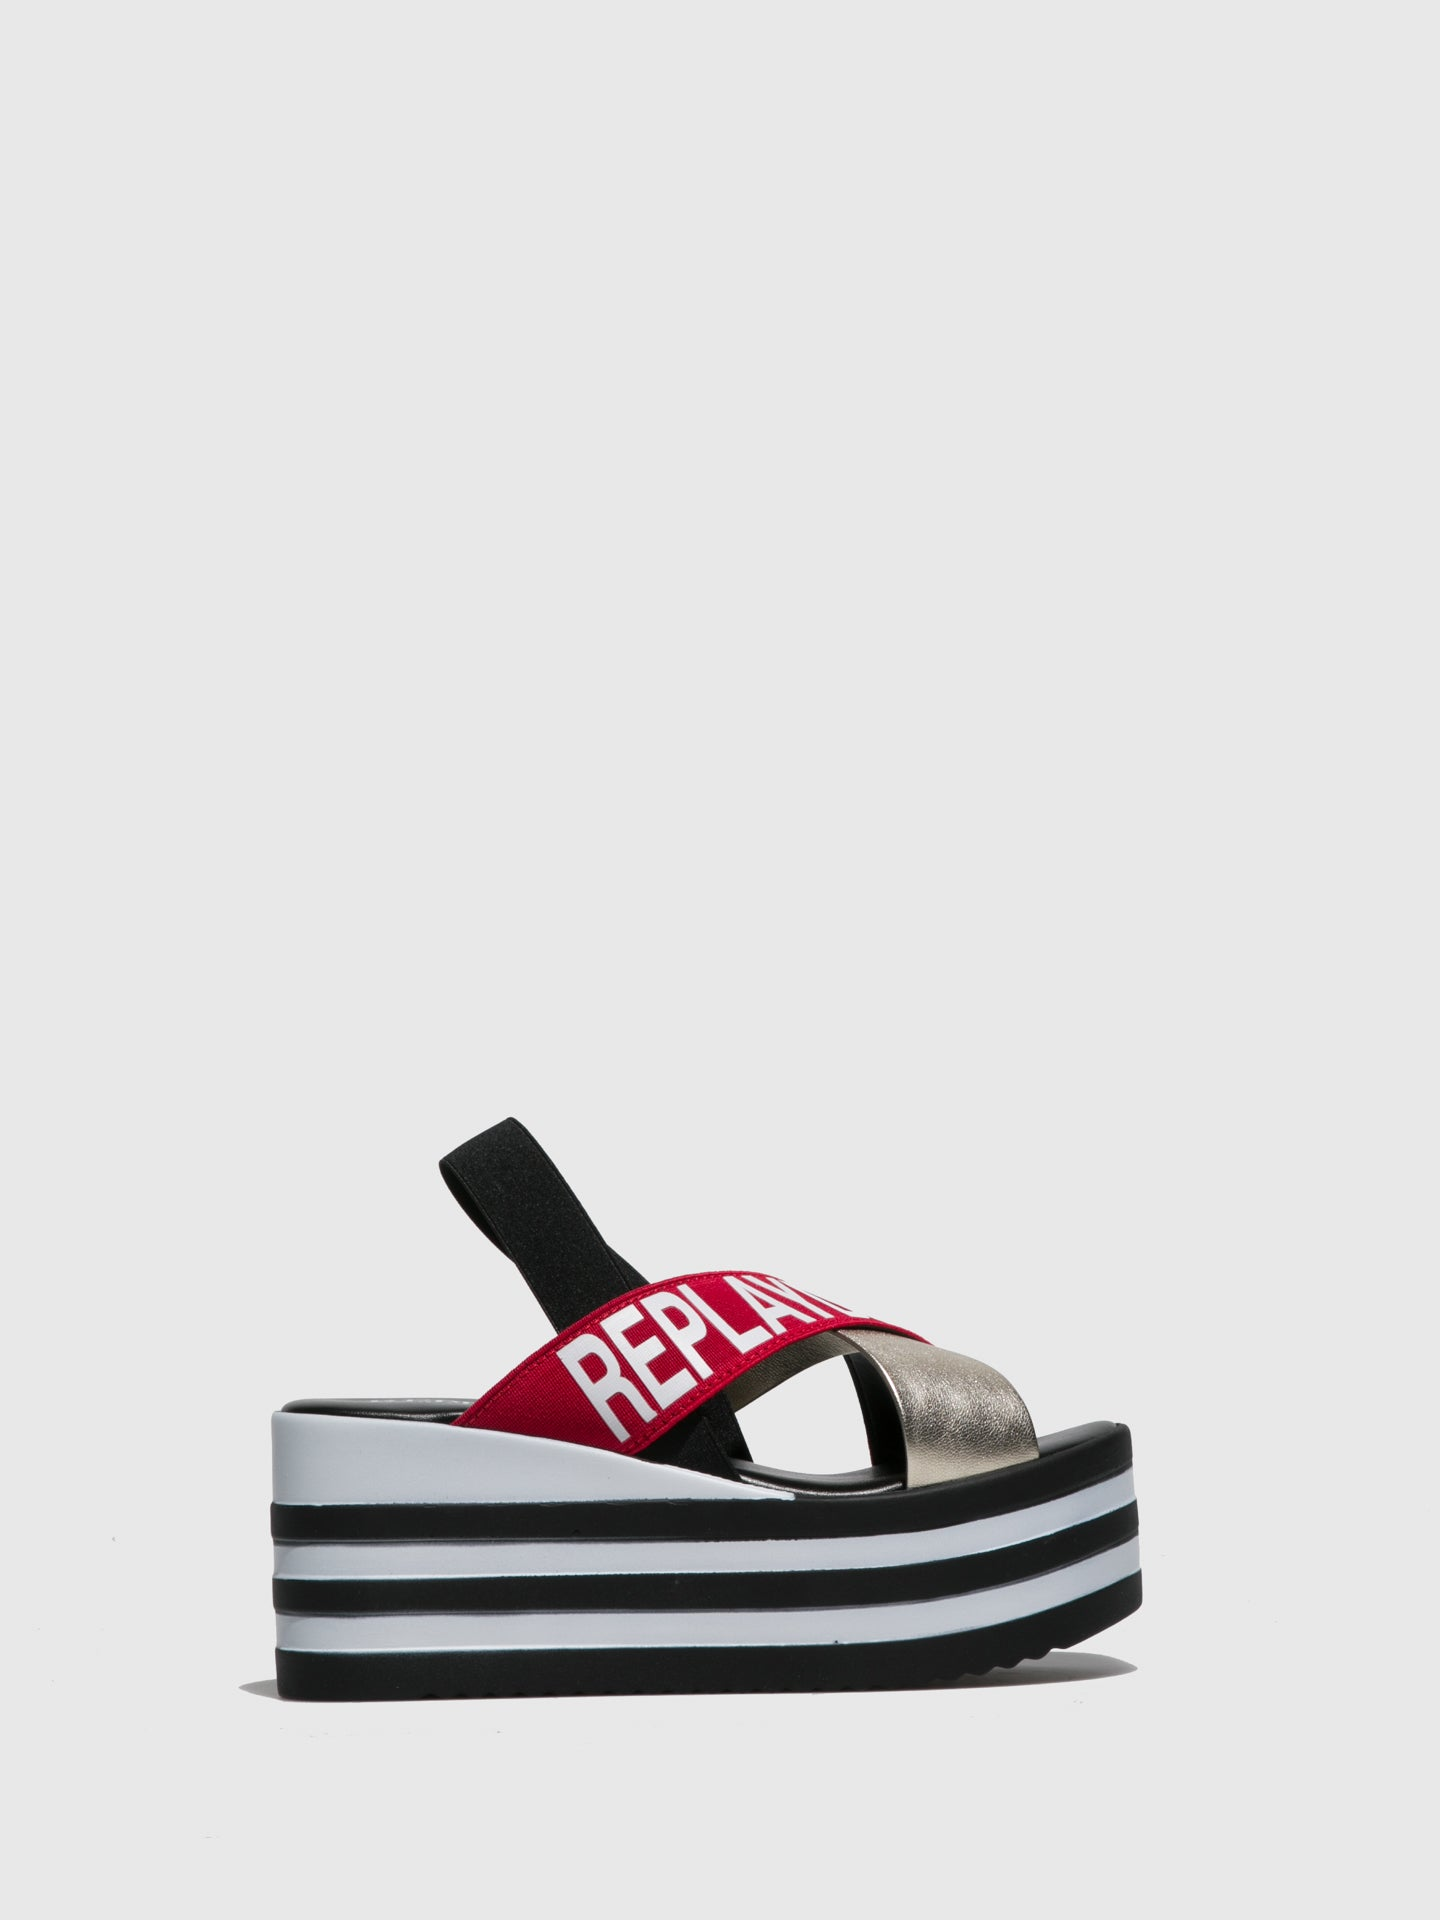 Replay Red Platform Sandals